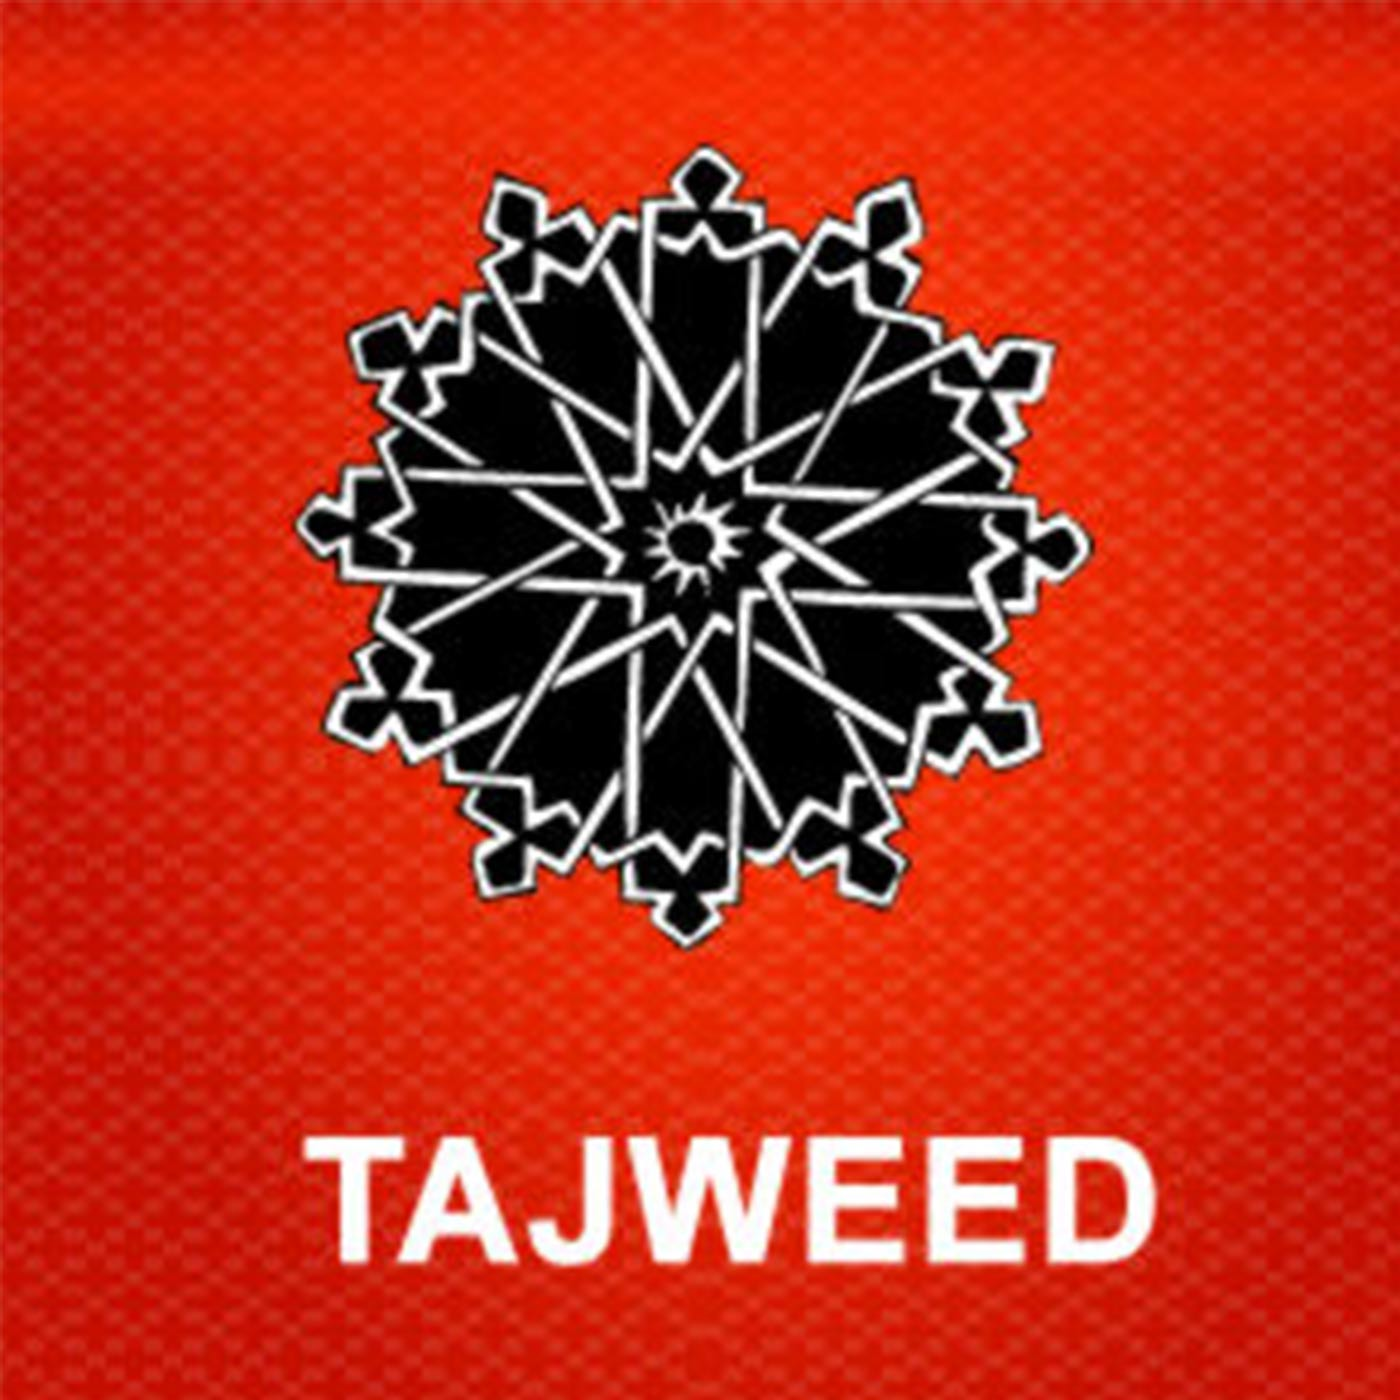 Tajweed in English and French show art